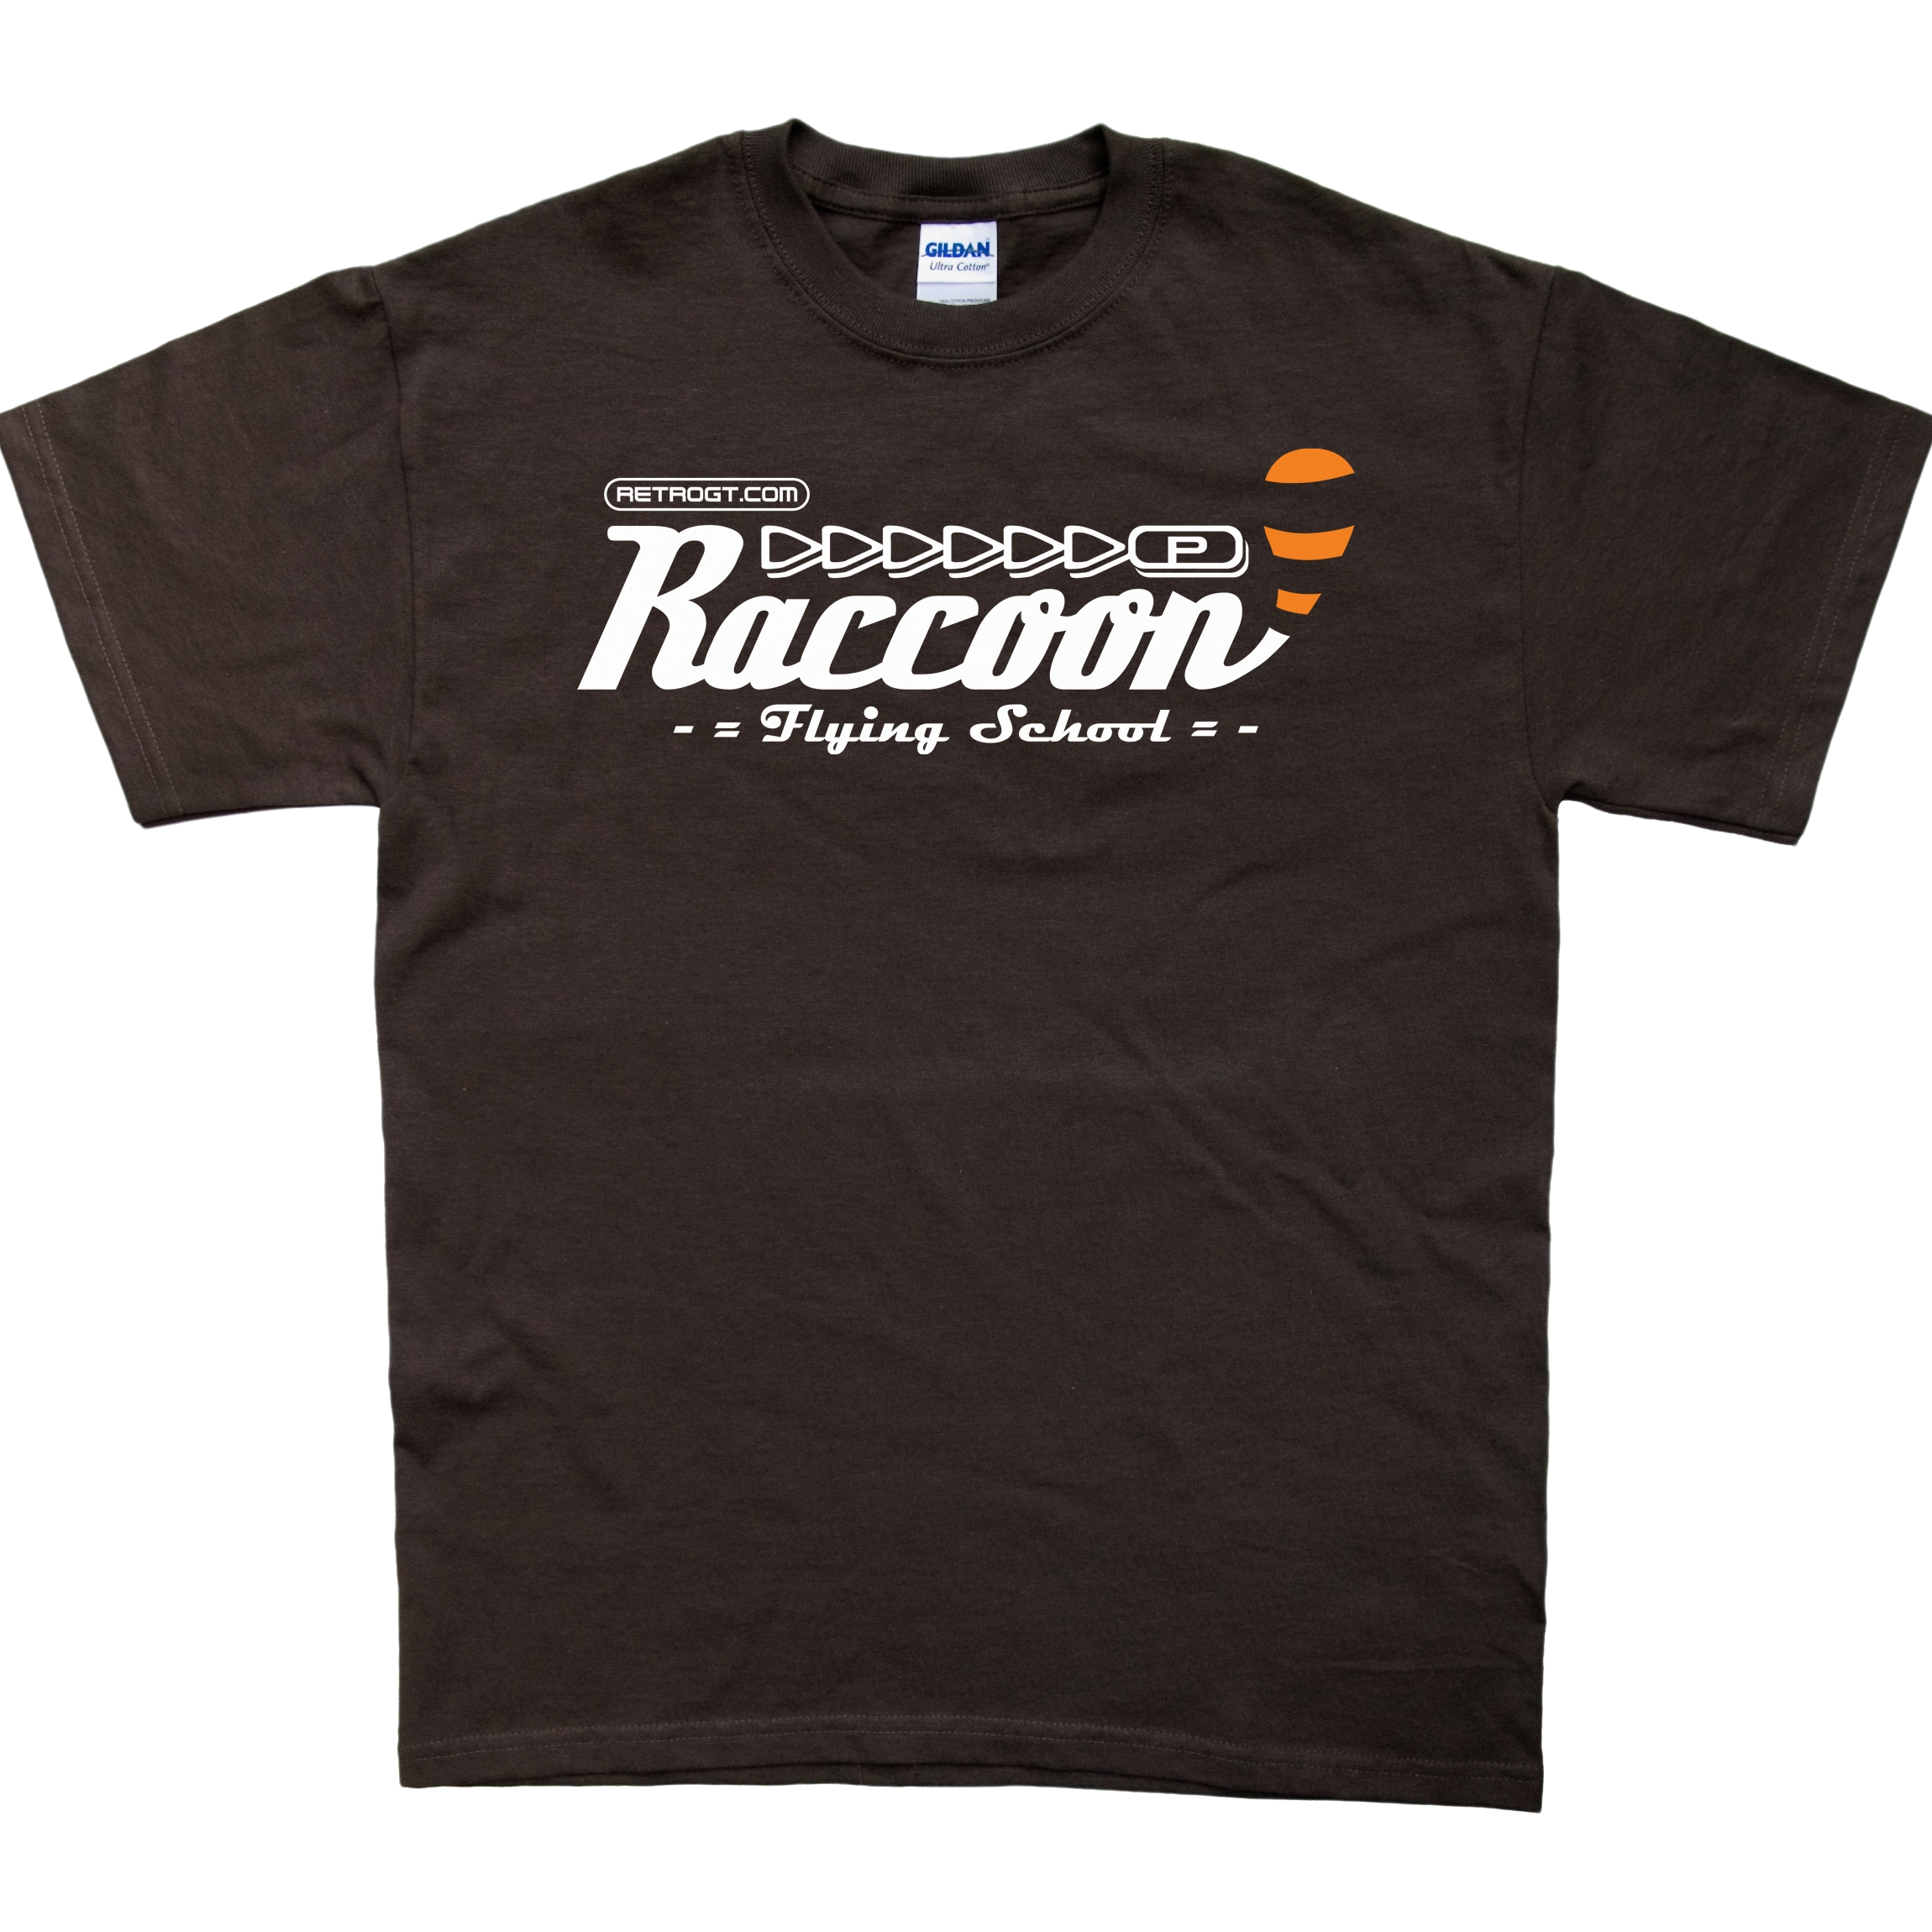 Raccoon Flying School T-Shirt